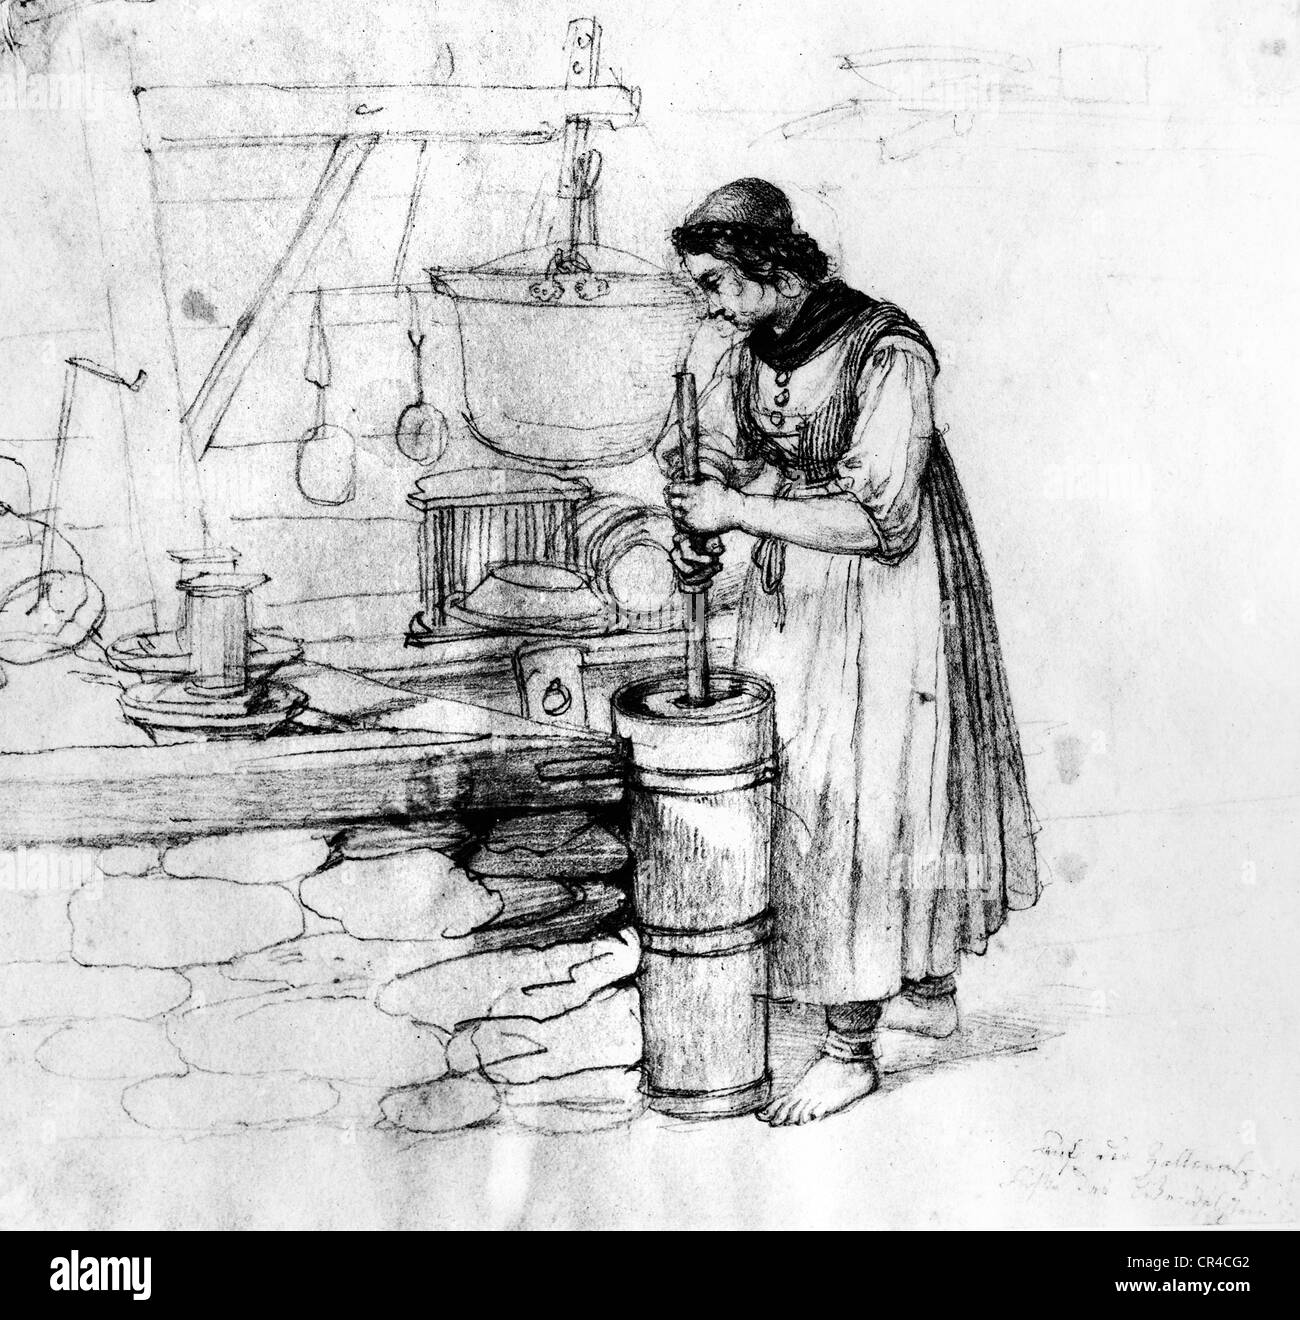 Dairymaid, Zelleralm, Wendelstein, Upper Bavaria, Germany, Europe, historical drawing by L. Quaglio, 1826 - Stock Image